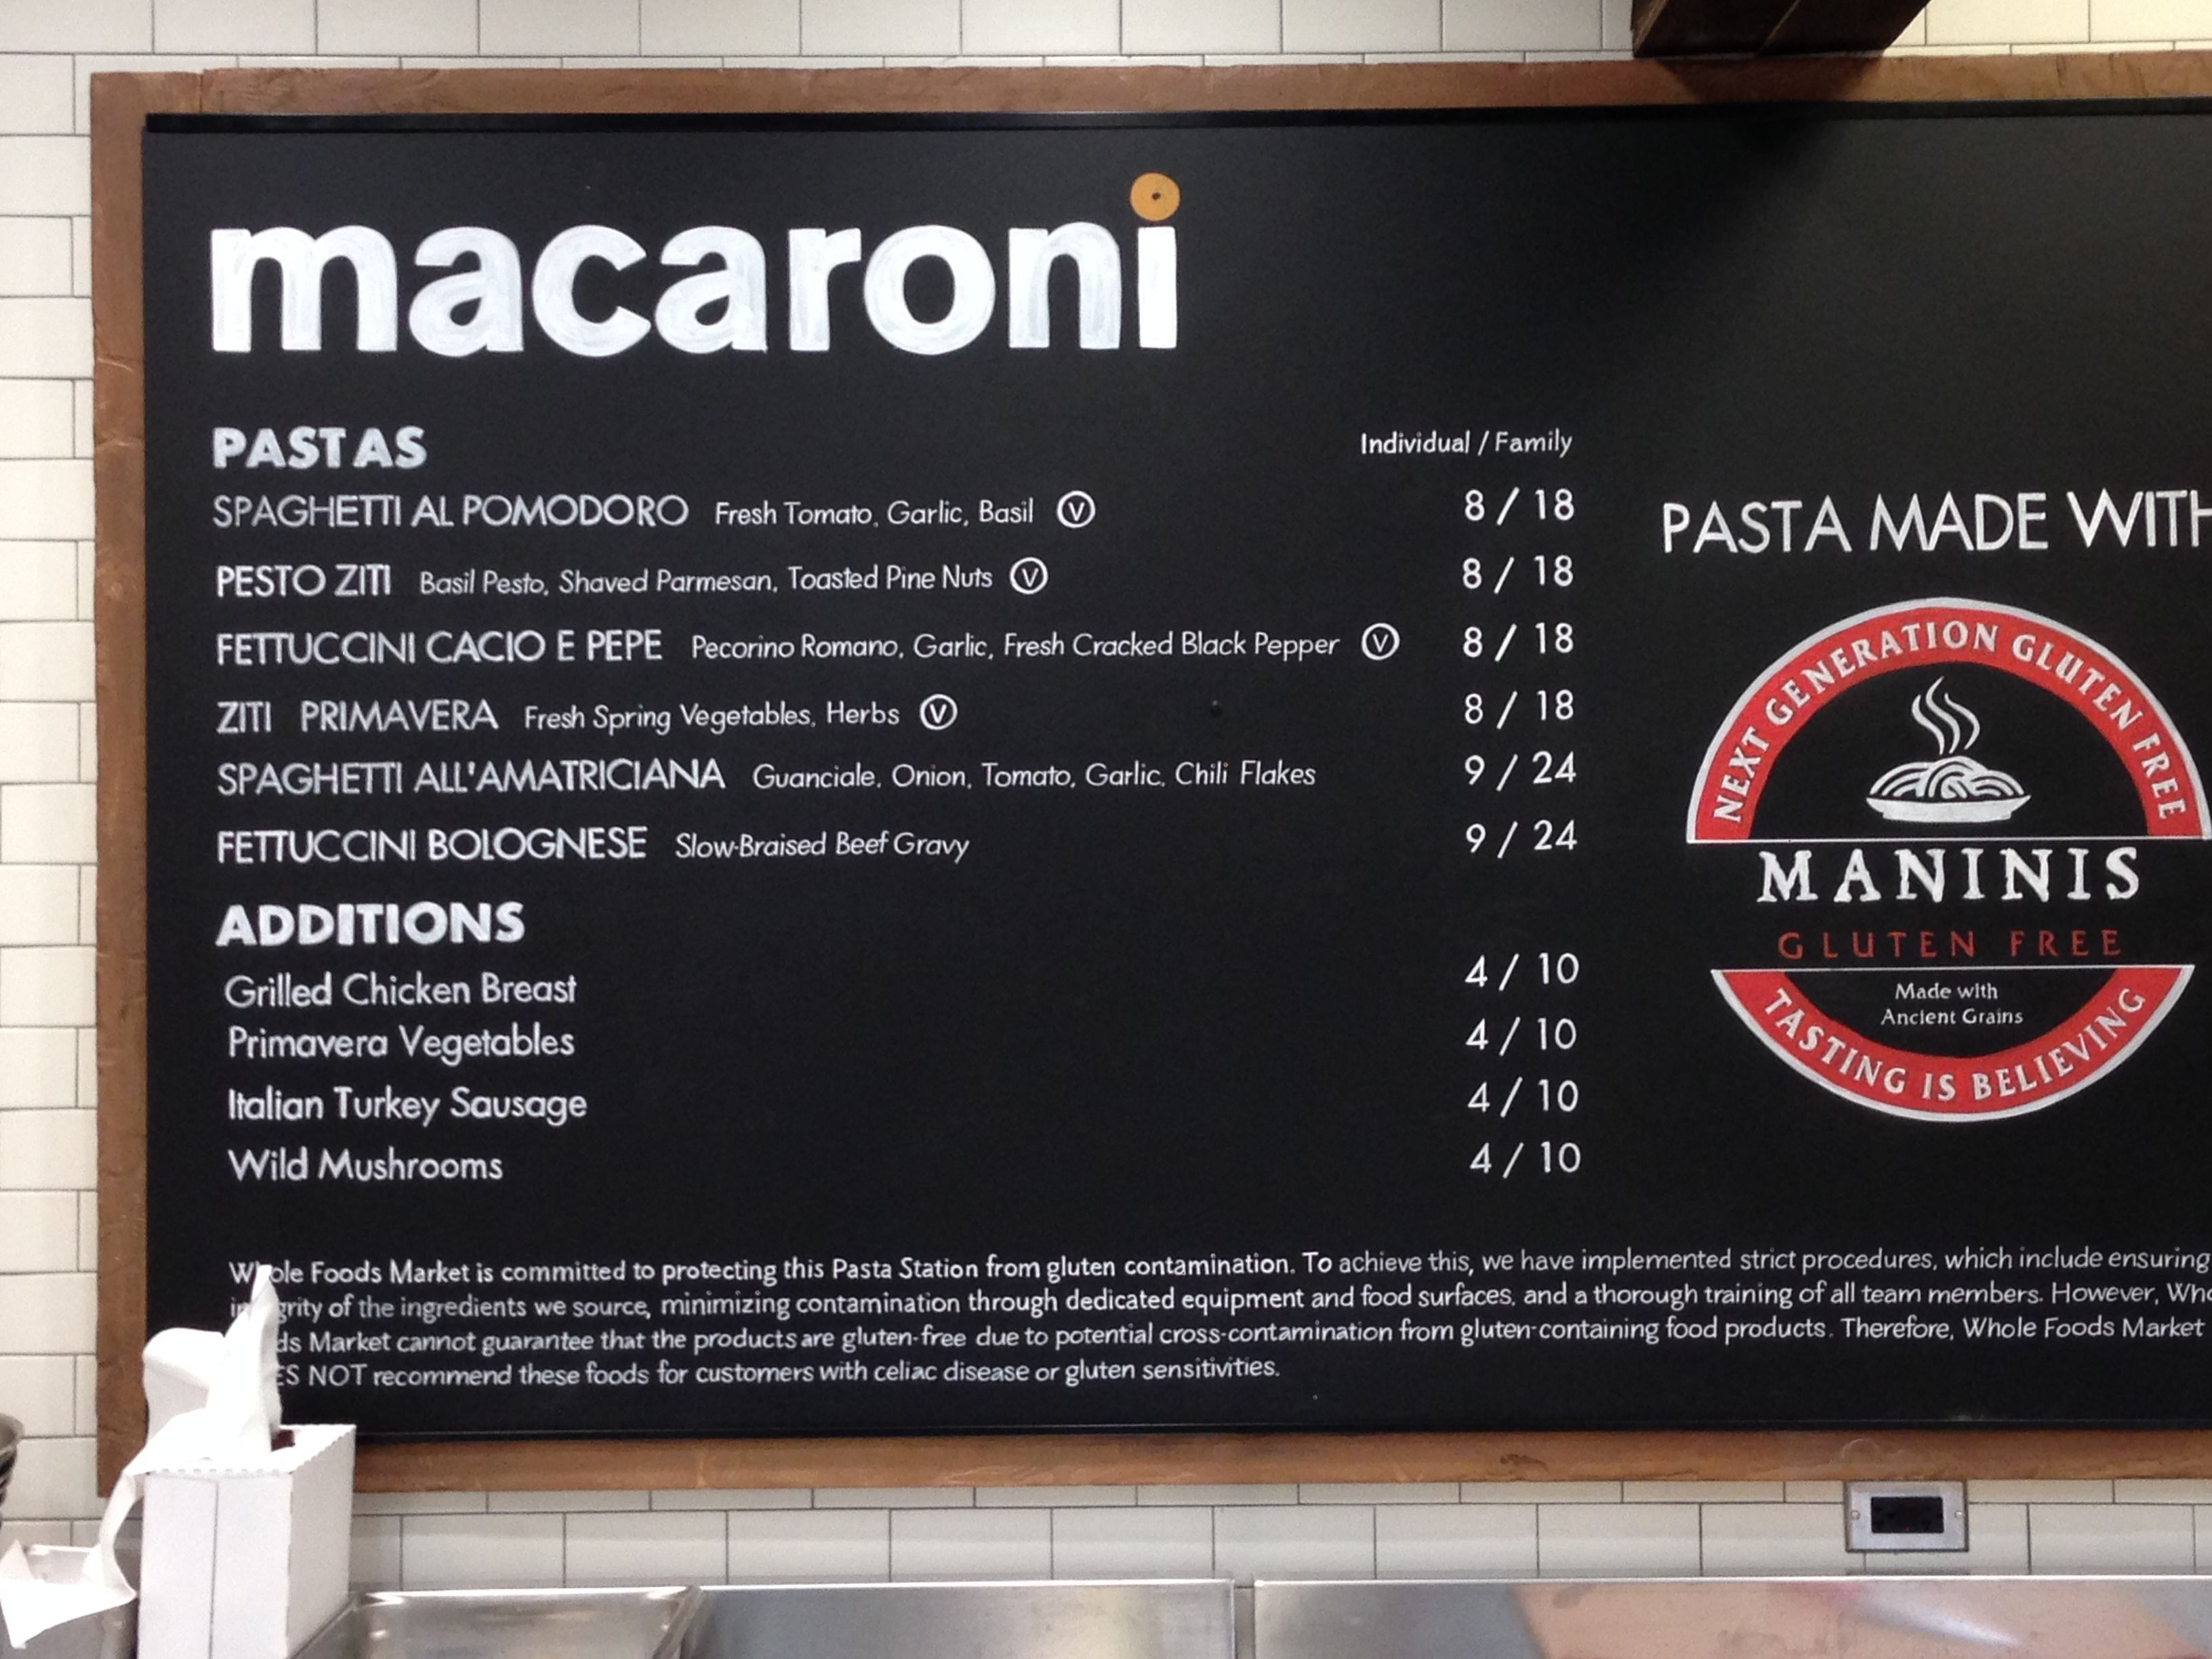 Can you believe it a pasta bar at whole foods marlboro